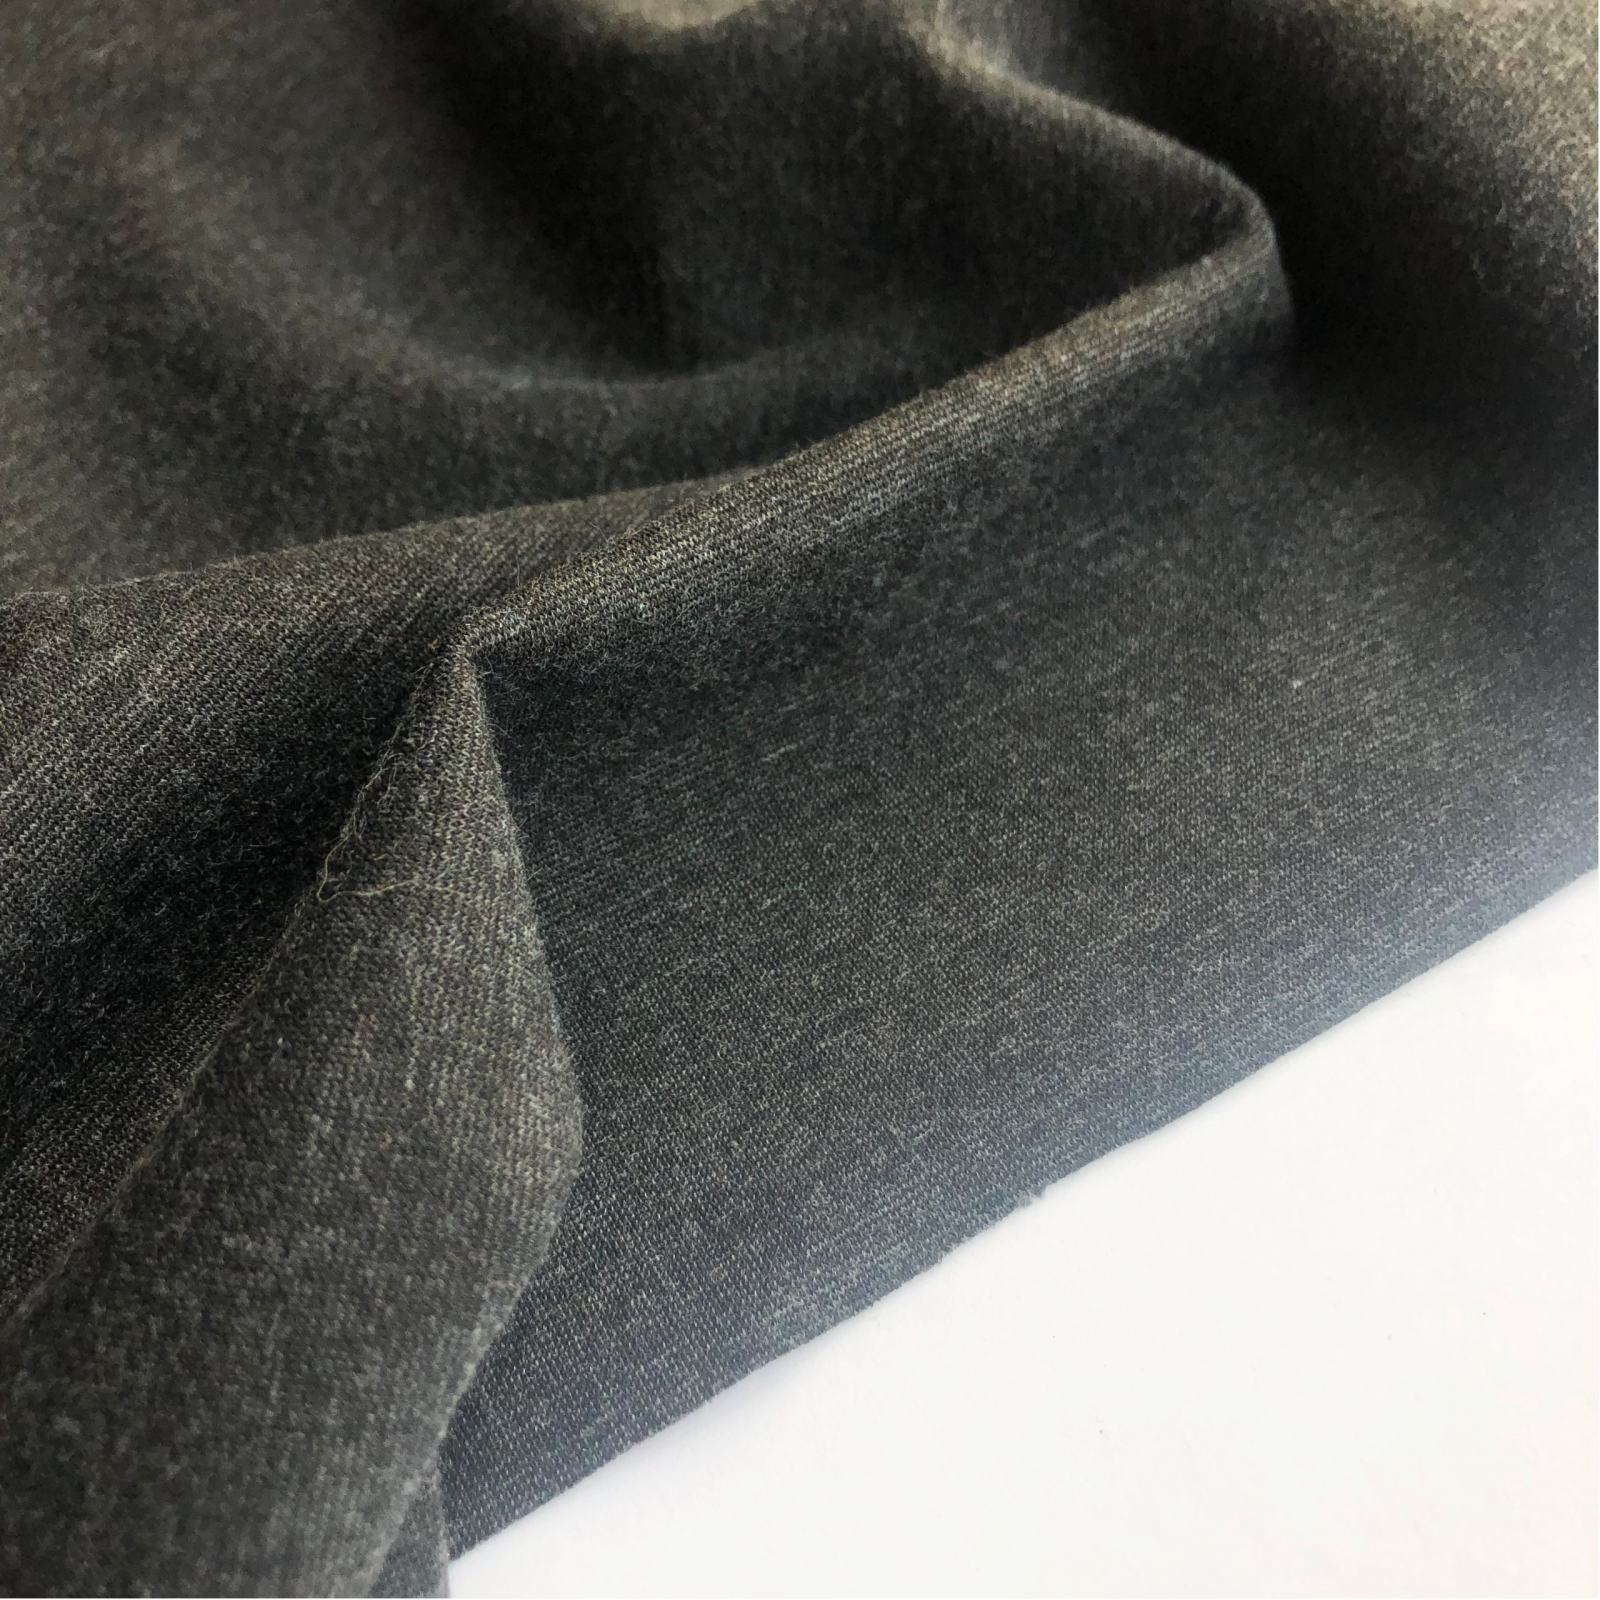 Remnant - Deadstock Charcoal Grey Ponte Knit 55 - 1 yard